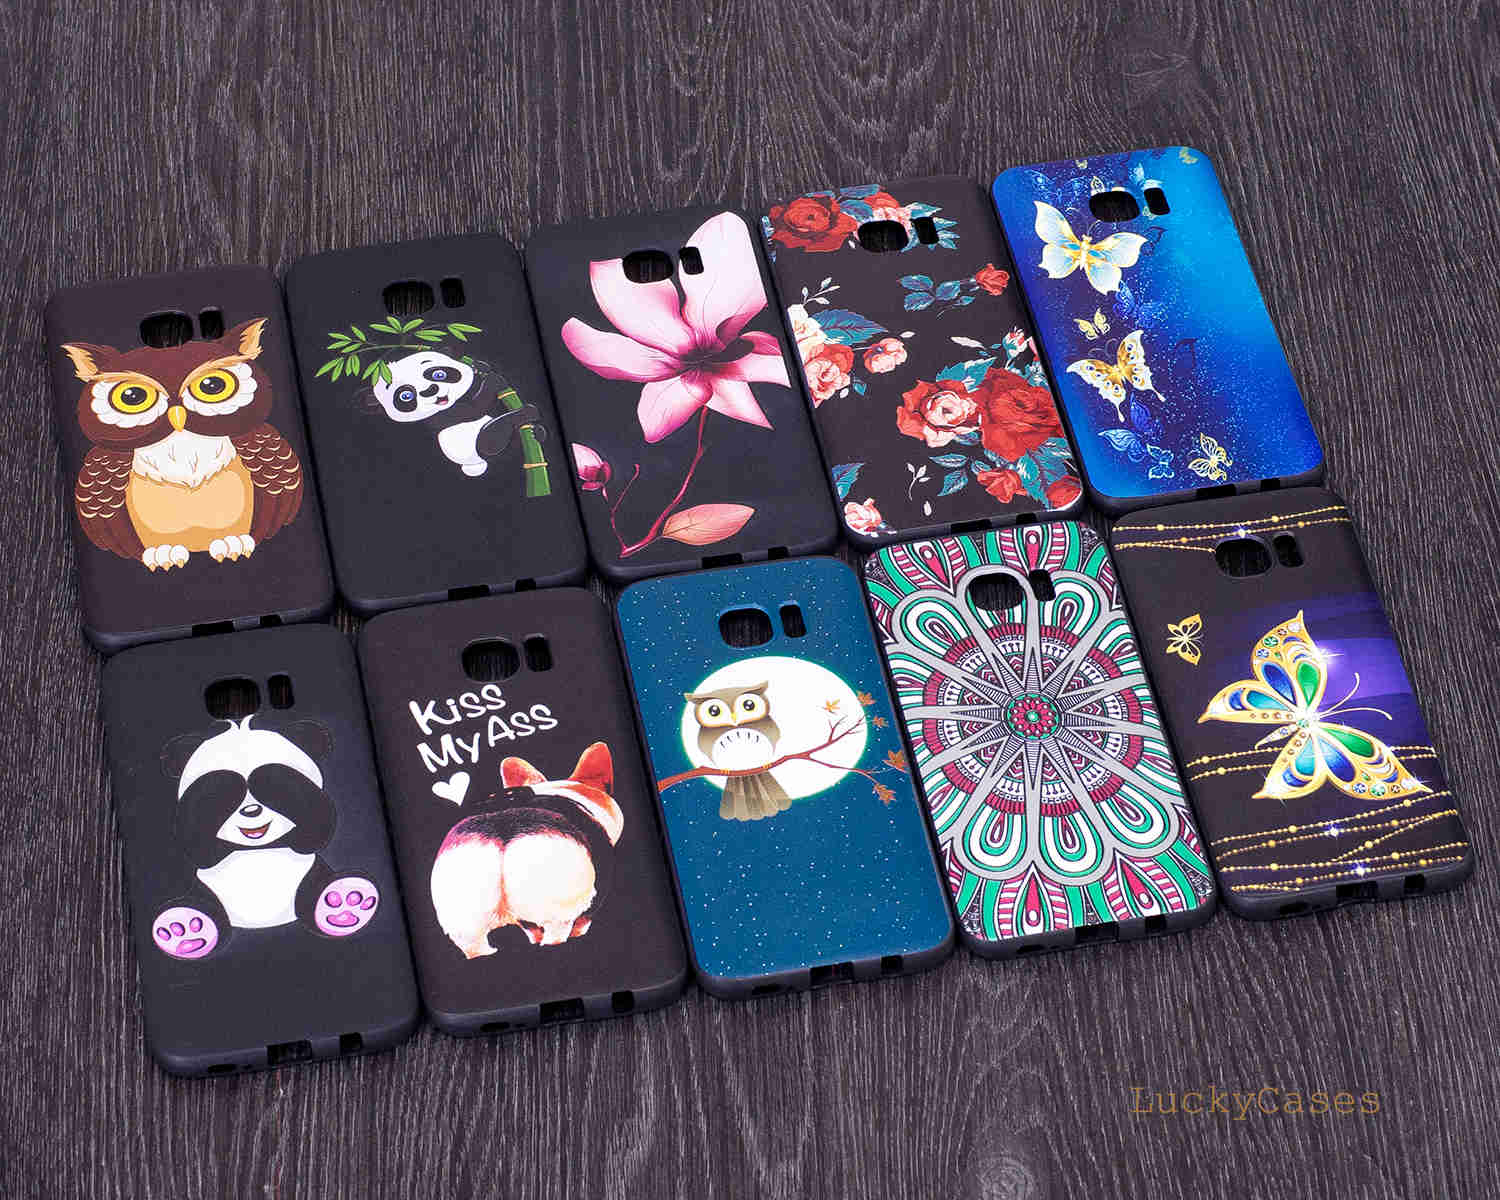 for Samsung S7 EDGE Phone case cover 3D Relief Flower Silicone tpu case back painting capa coque Painted